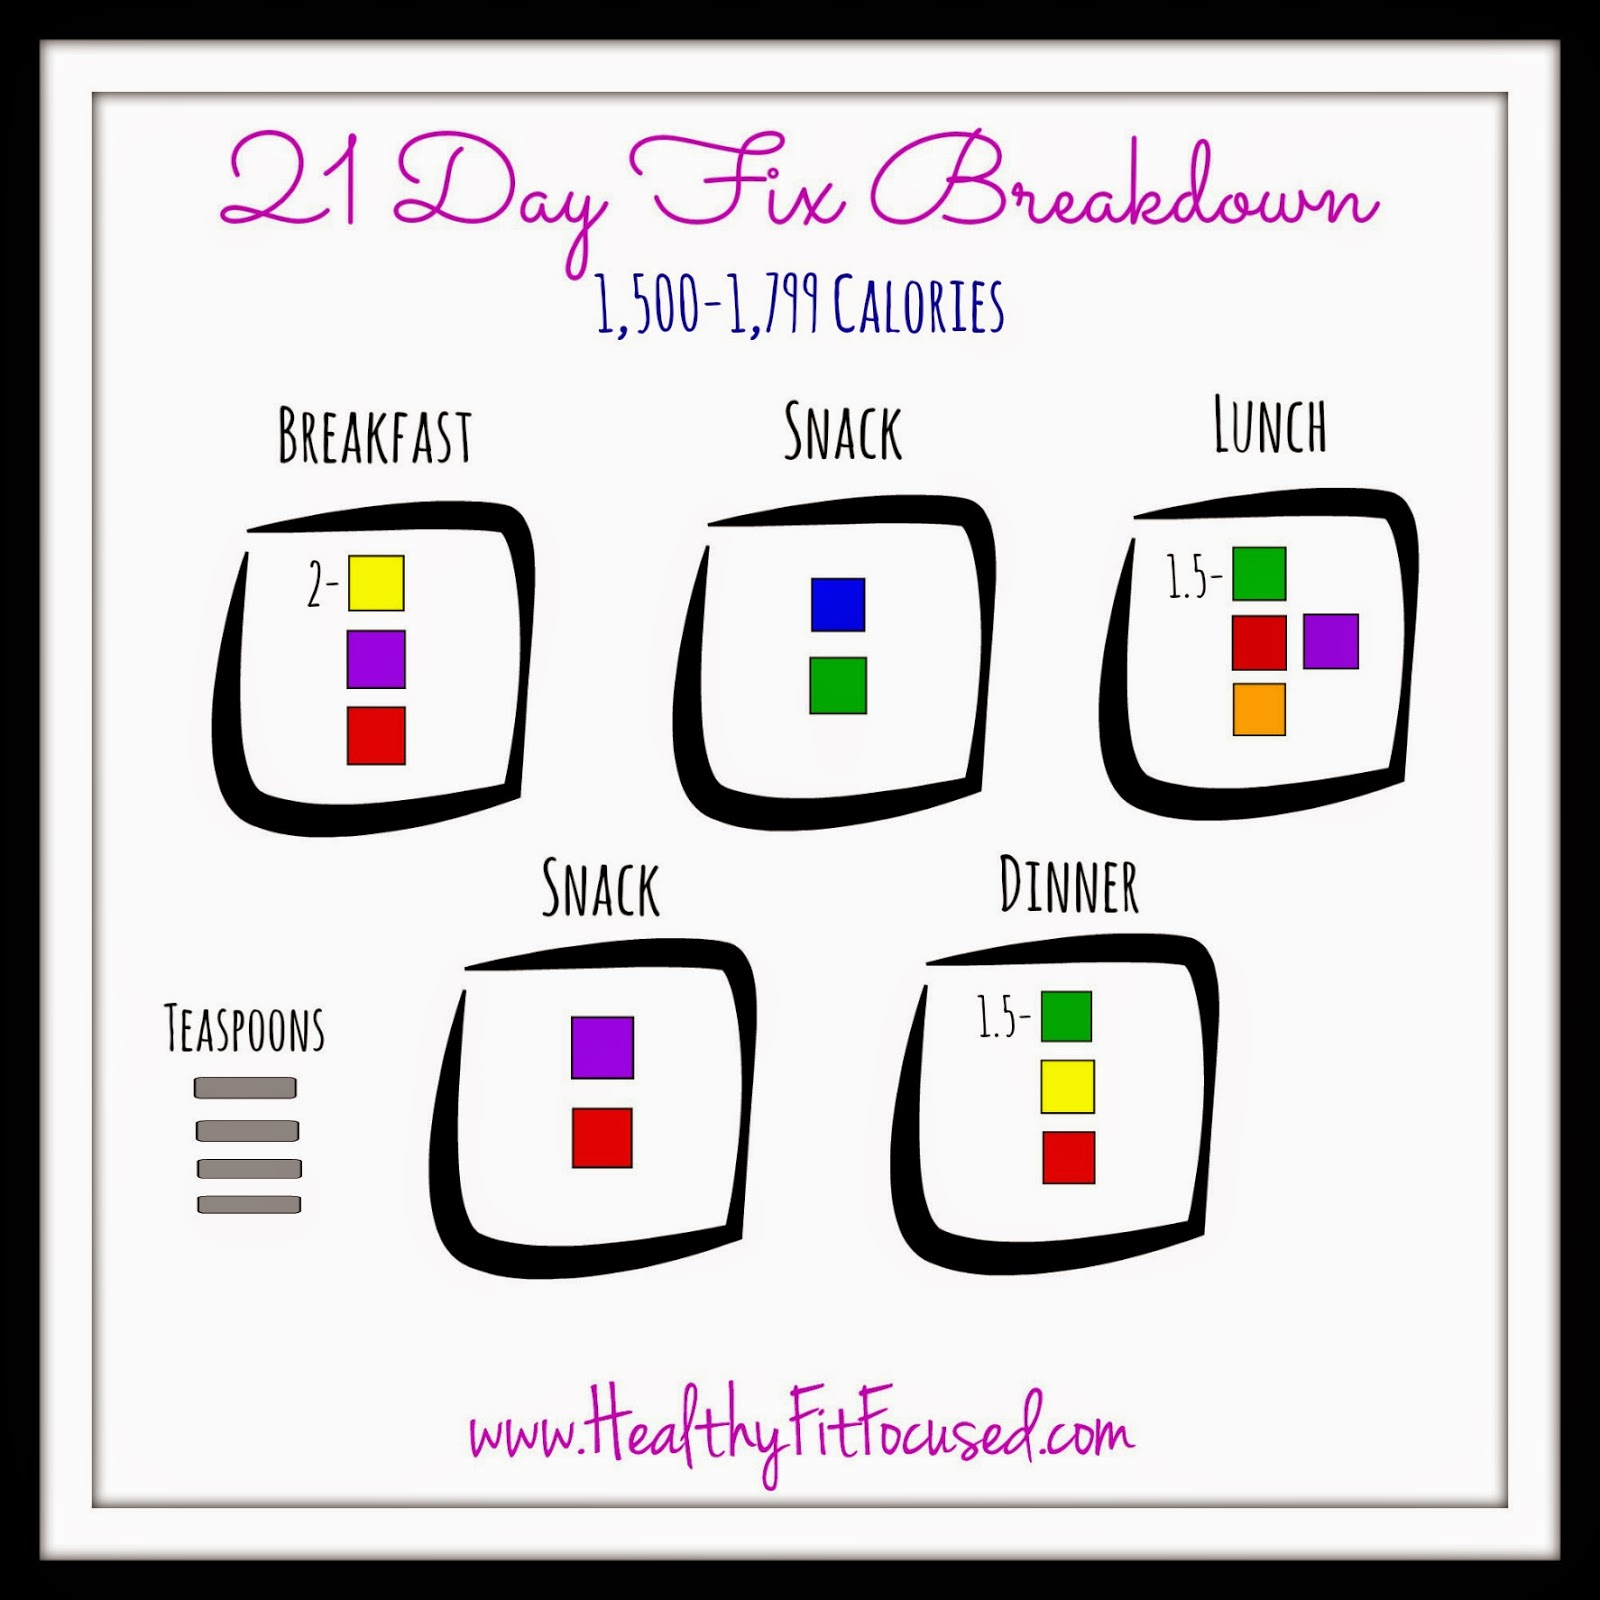 21 Day Fix Meal Breakdown, 21 Day Fix Cheat Sheet, 21 Day Fix Made Easy, 1500-1799 calories,